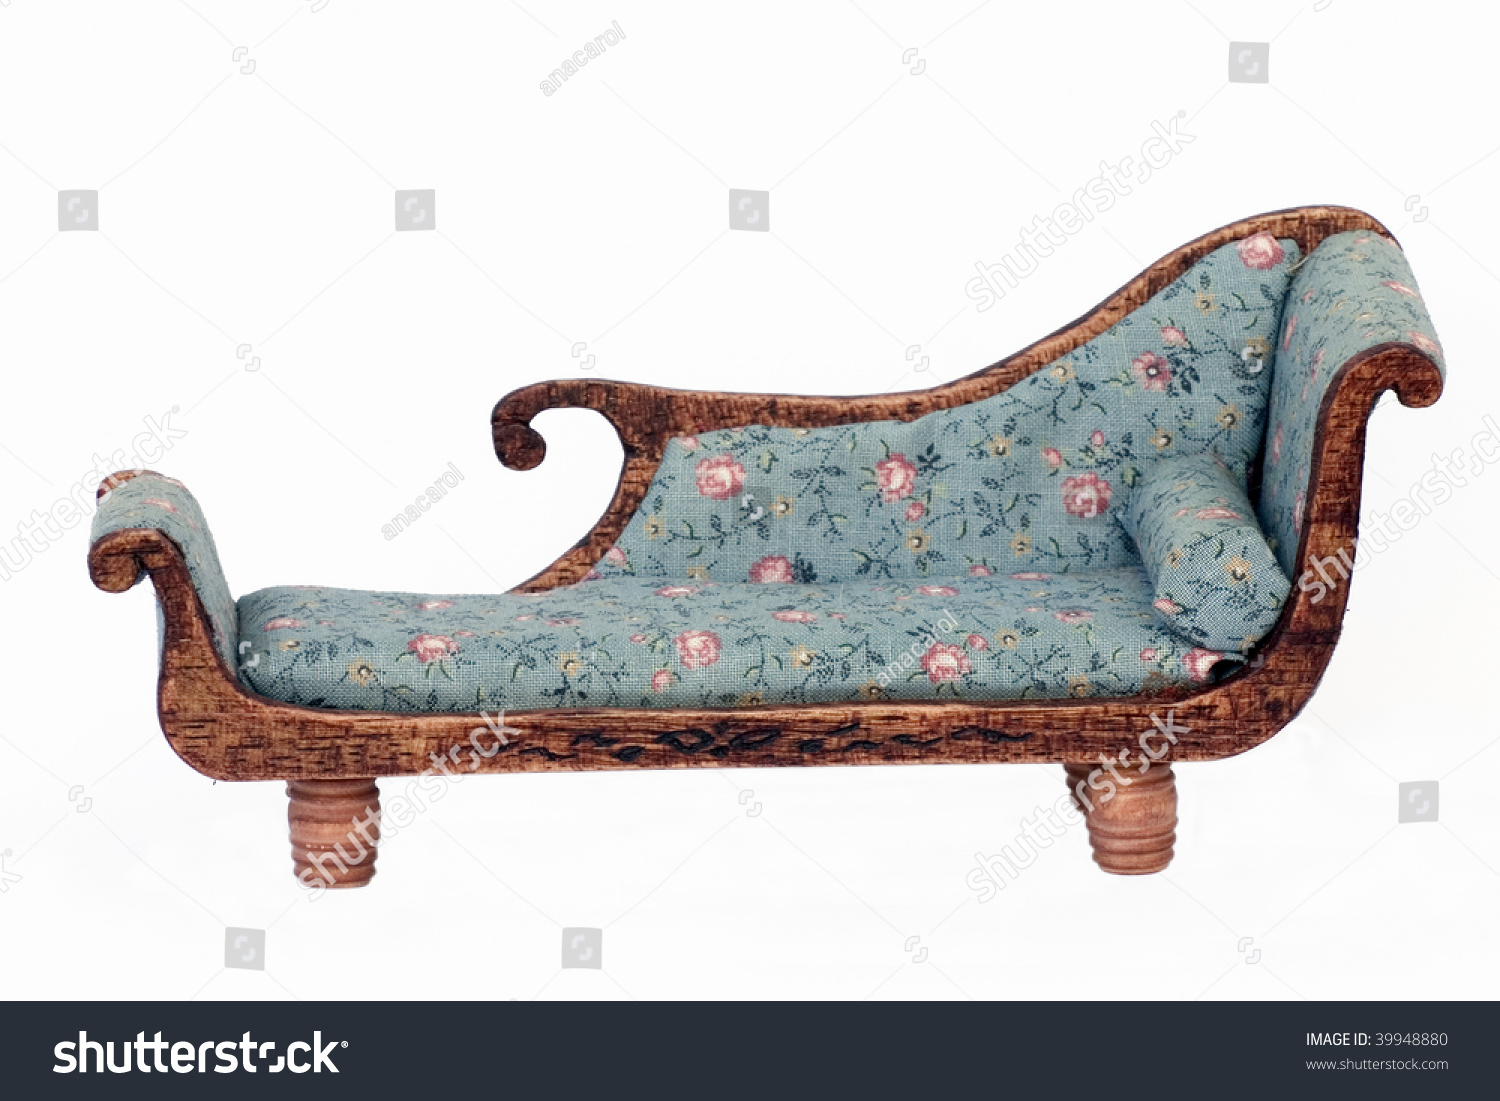 Chaise Design Miniature Miniature Chaise Longe Stock Photo Edit Now 39948880